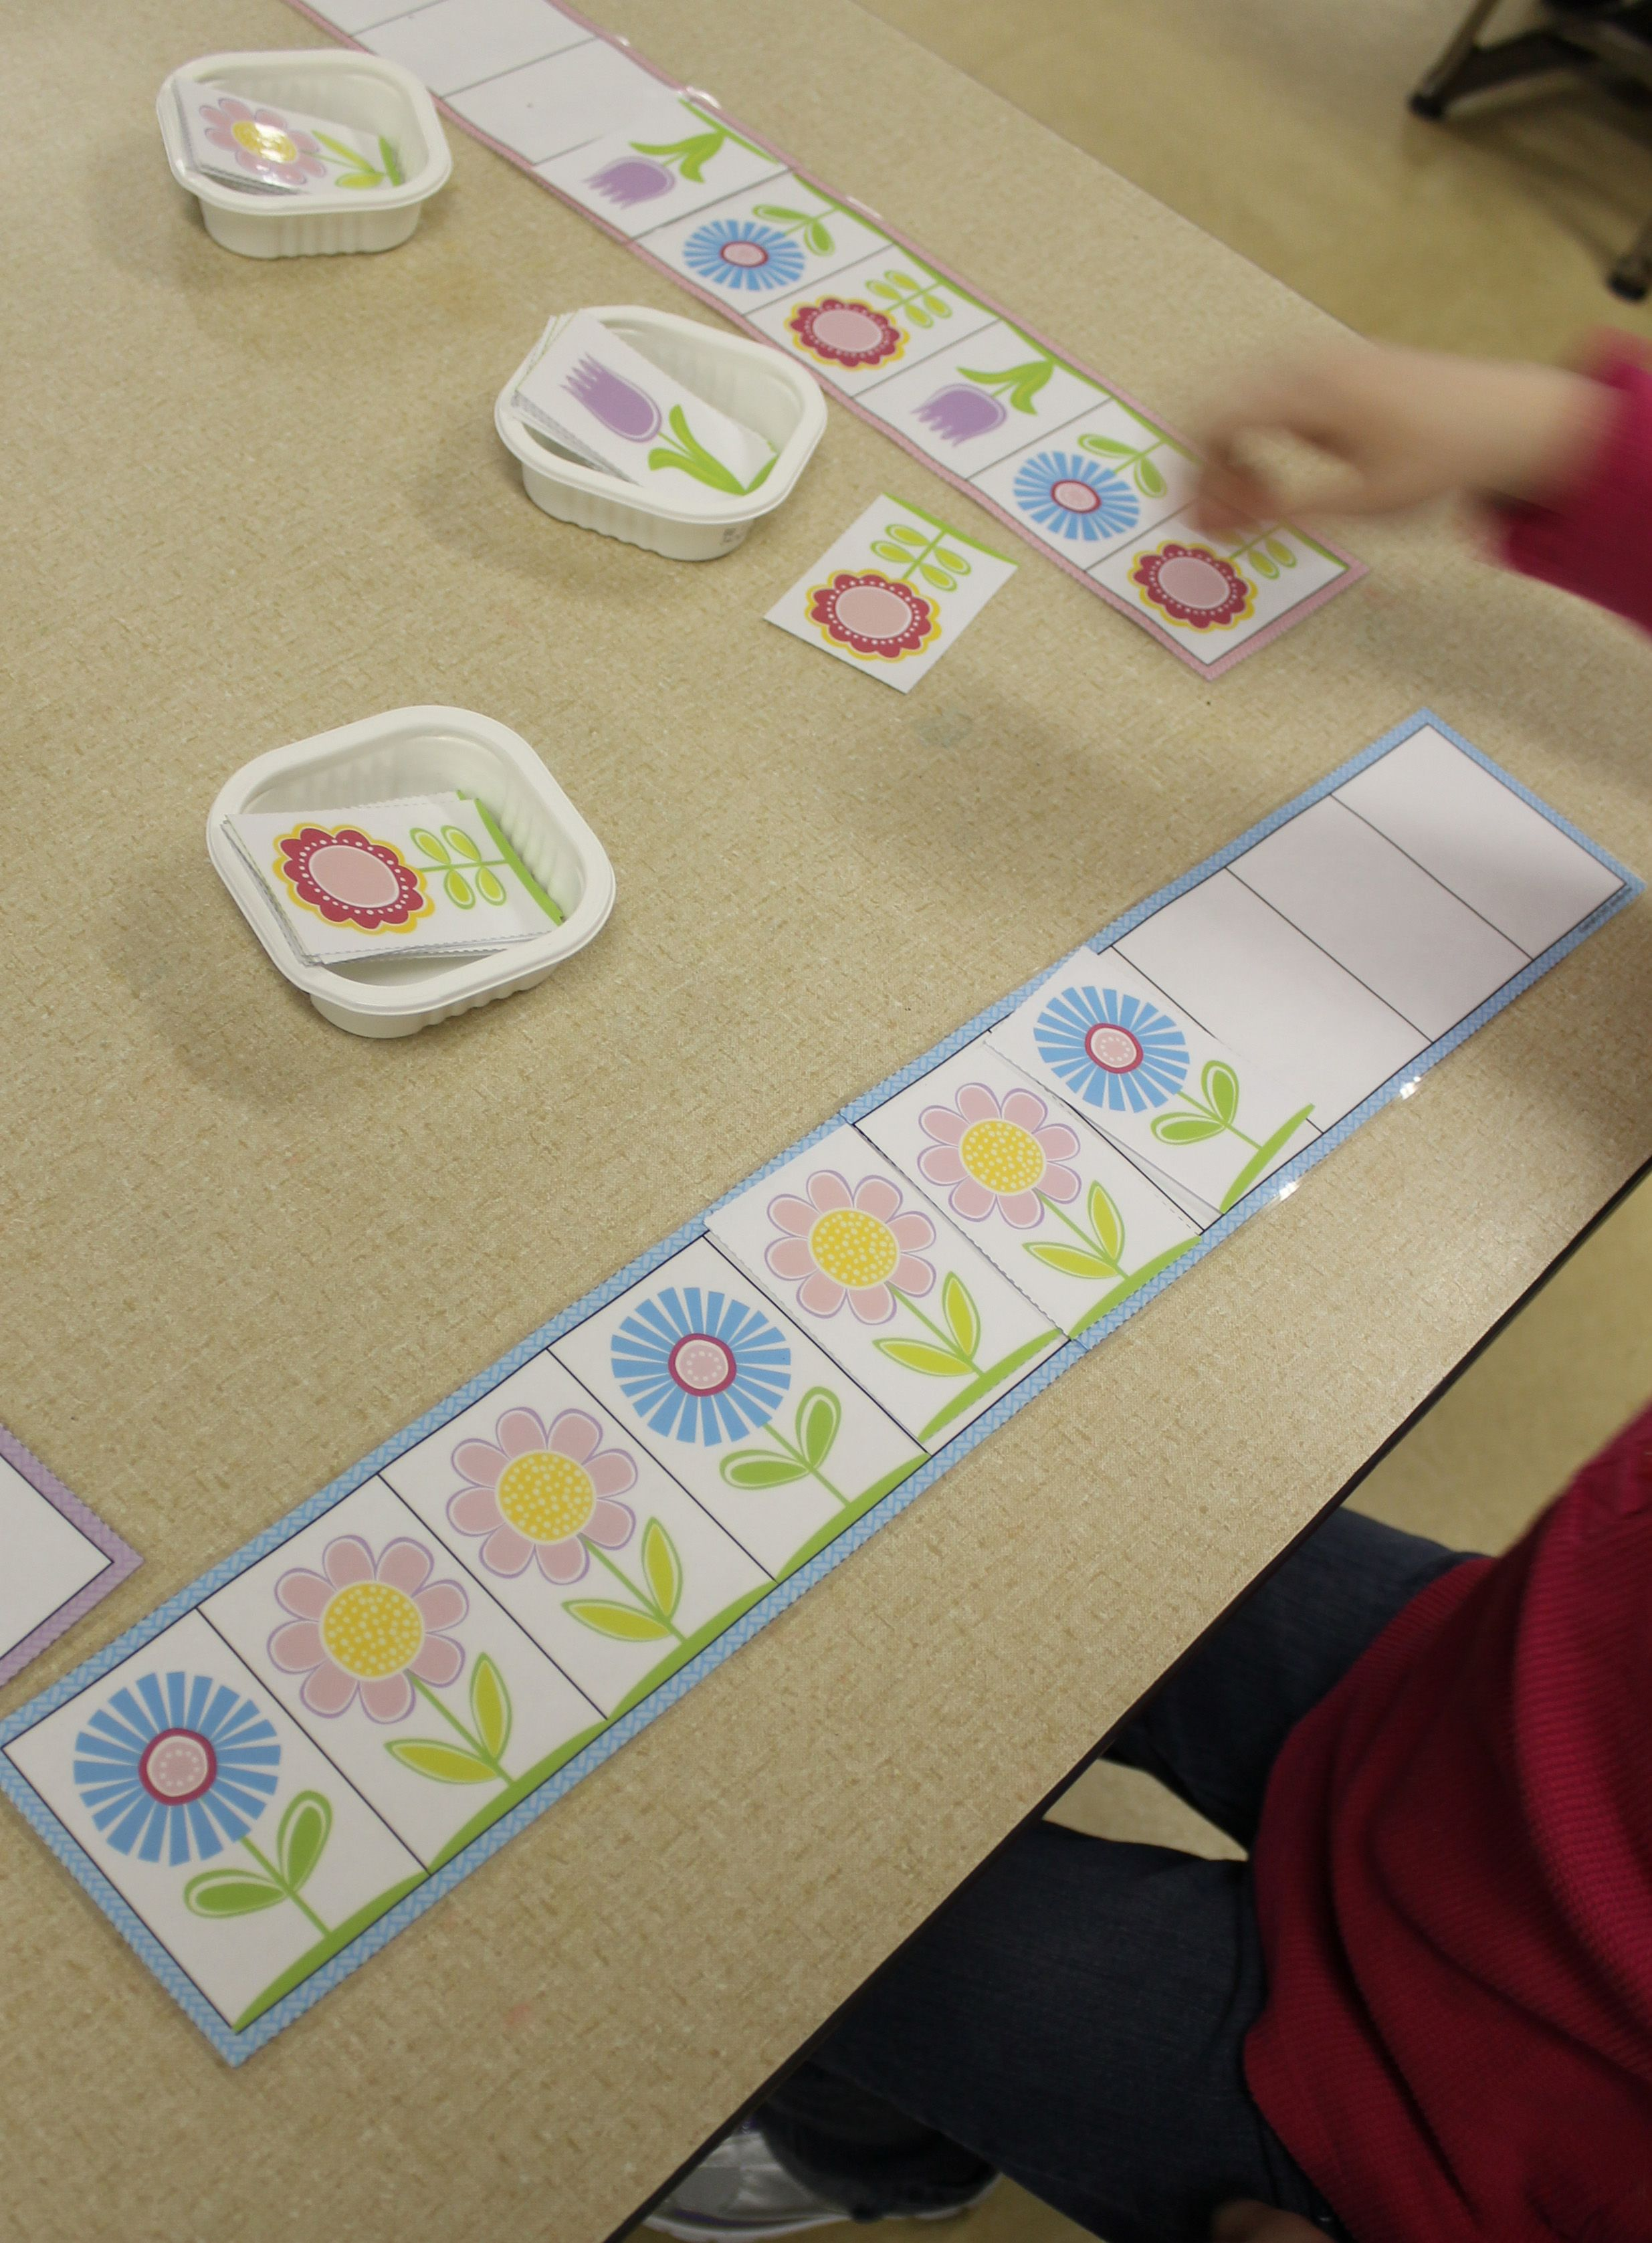 Flower Power Patterns For Preschool And Early Childhood